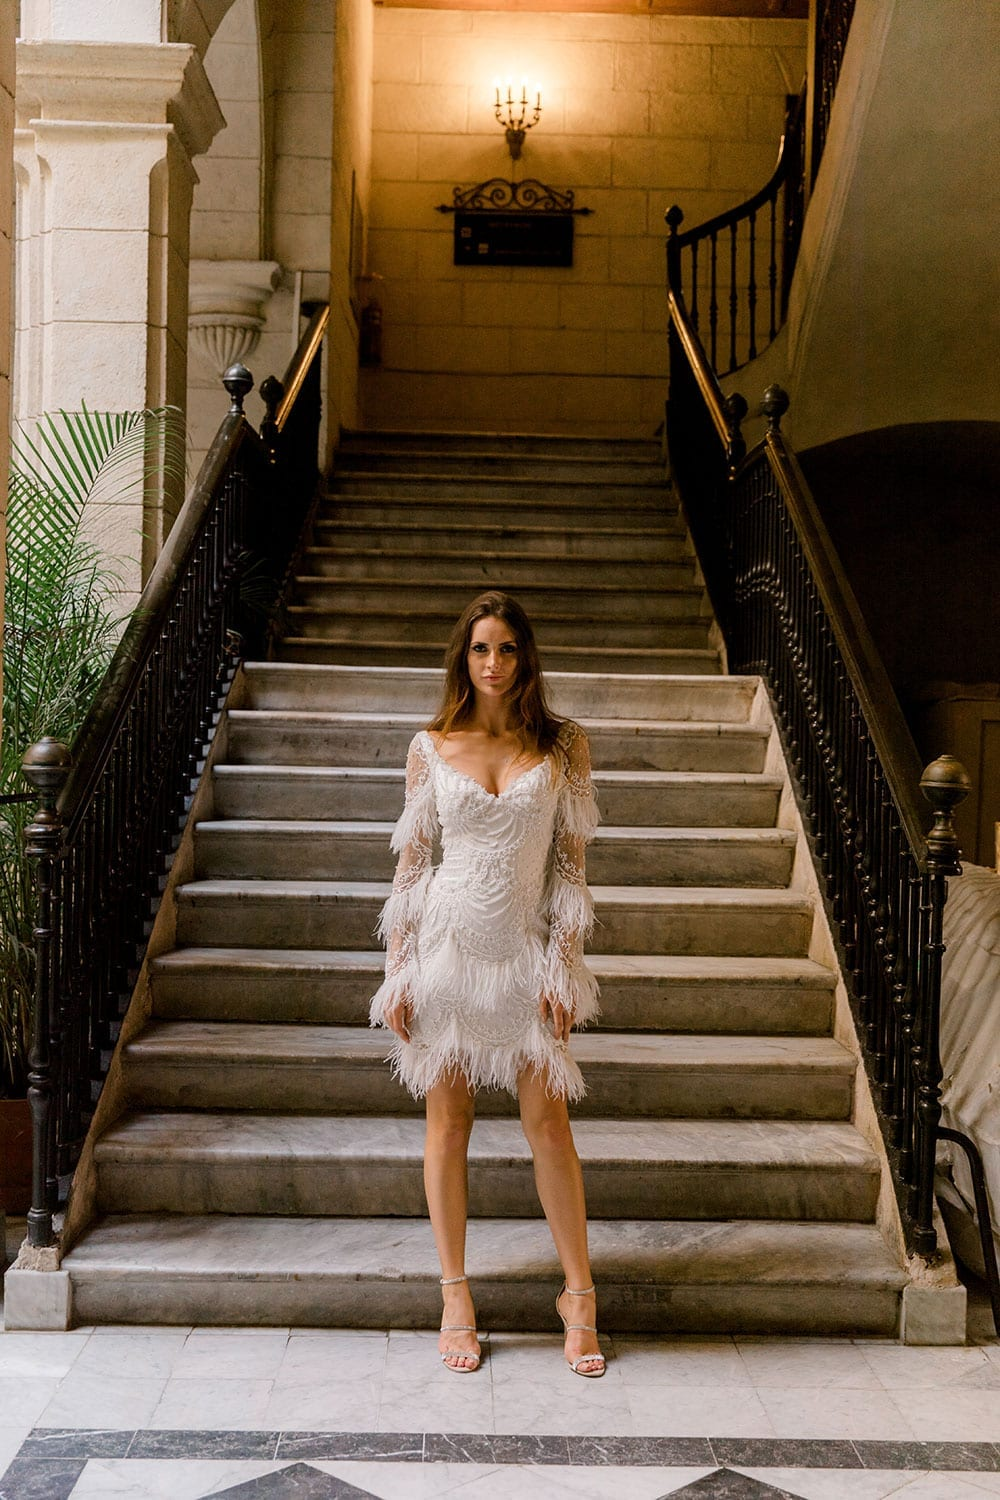 Model wearing Vinka Design Chanel Wedding Dress, a Beaded French Lace Wedding Gown in beautiful building with long stairway in Havana